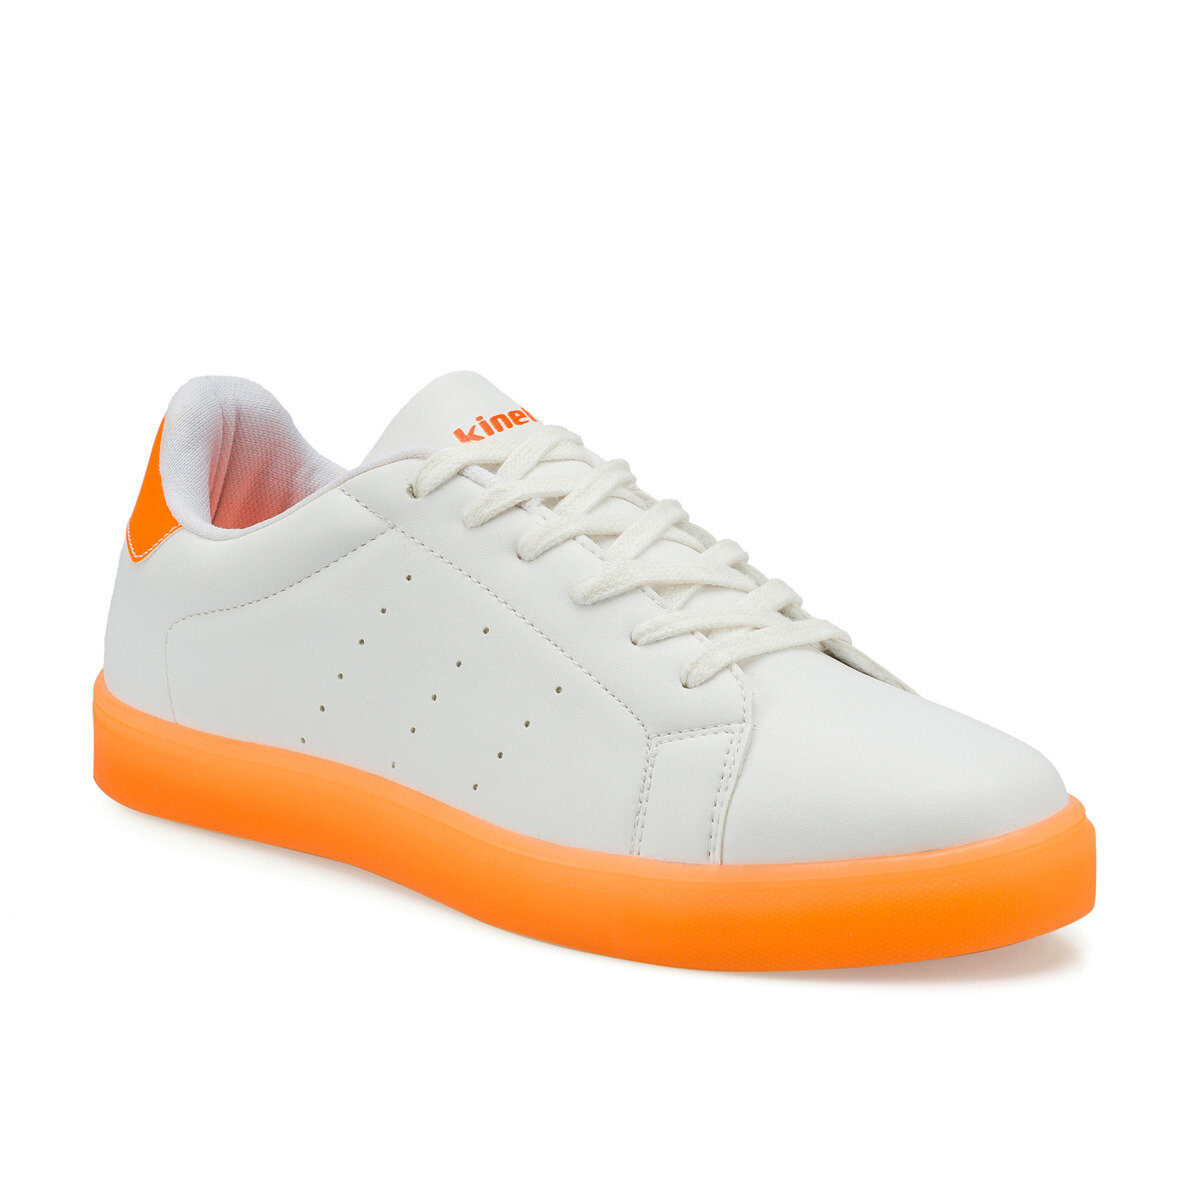 FLO HARVEY White Male Sneaker KINETIX